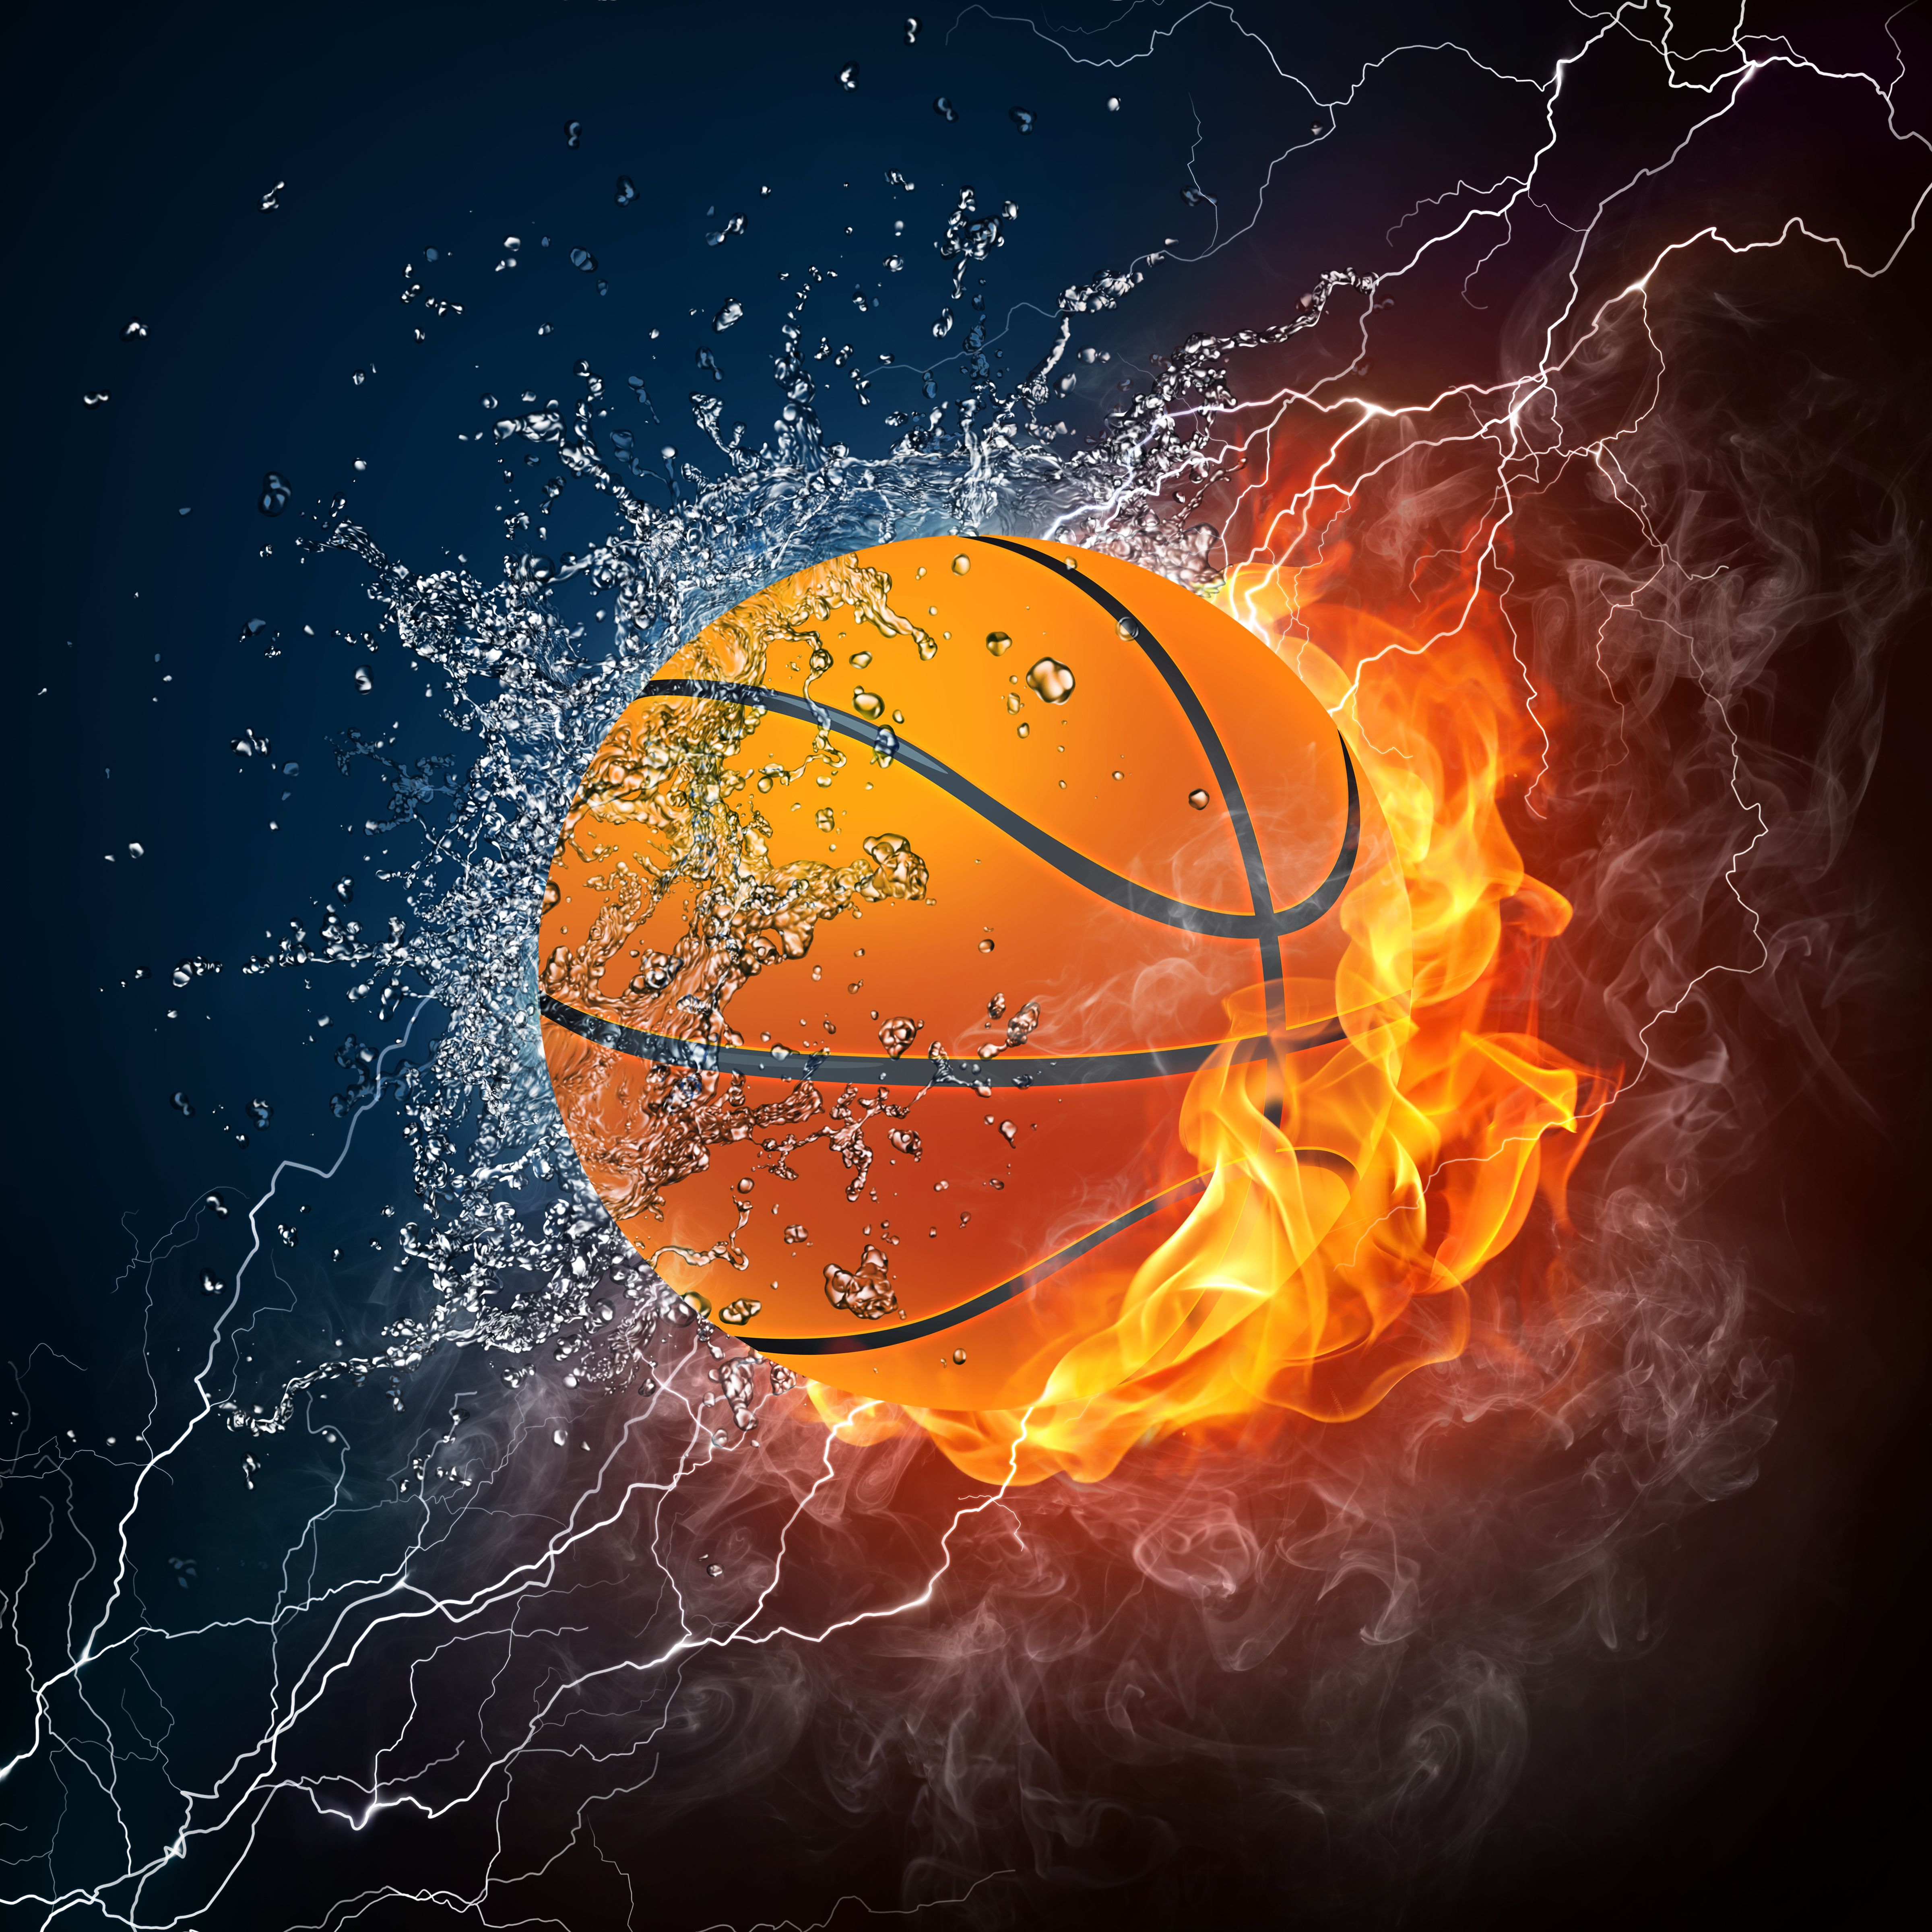 basketball ball in a fire hd wallpaper in high defination projects